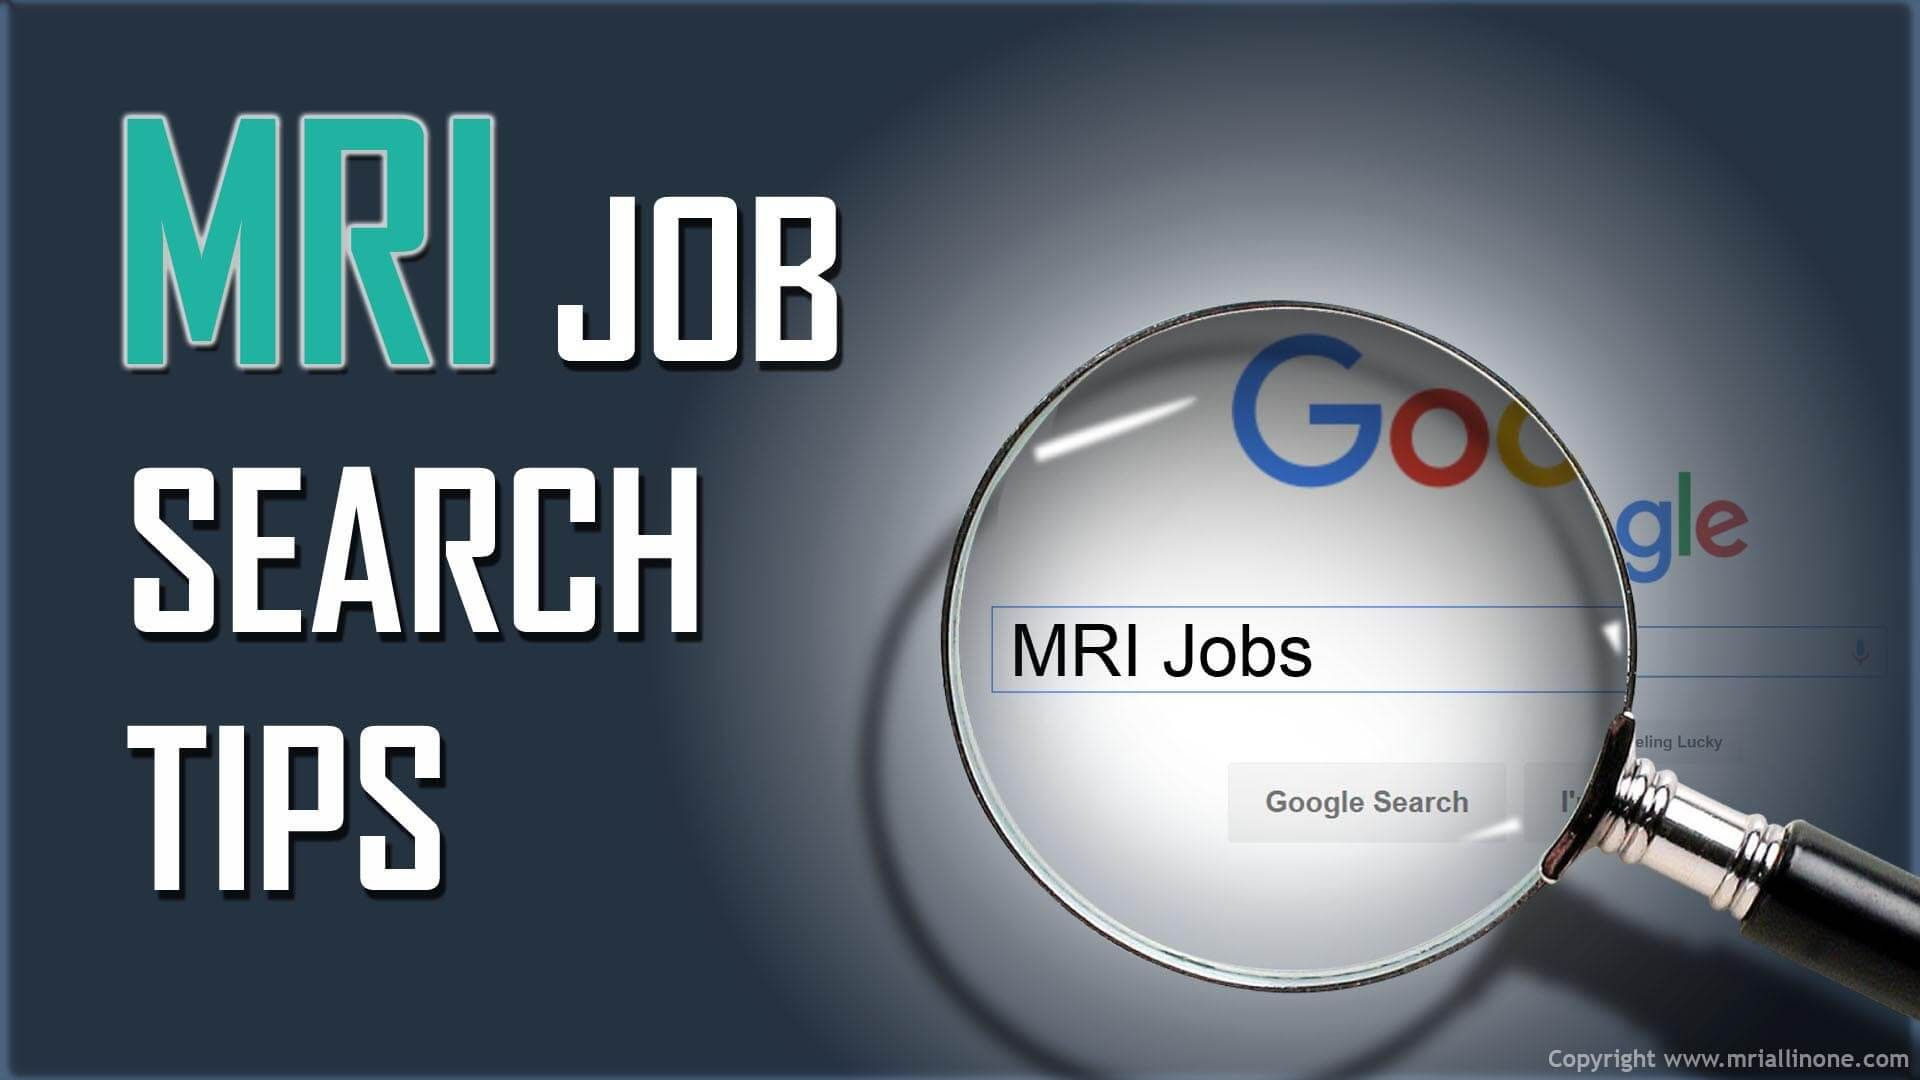 About to start looking for a job as an MRI technologist